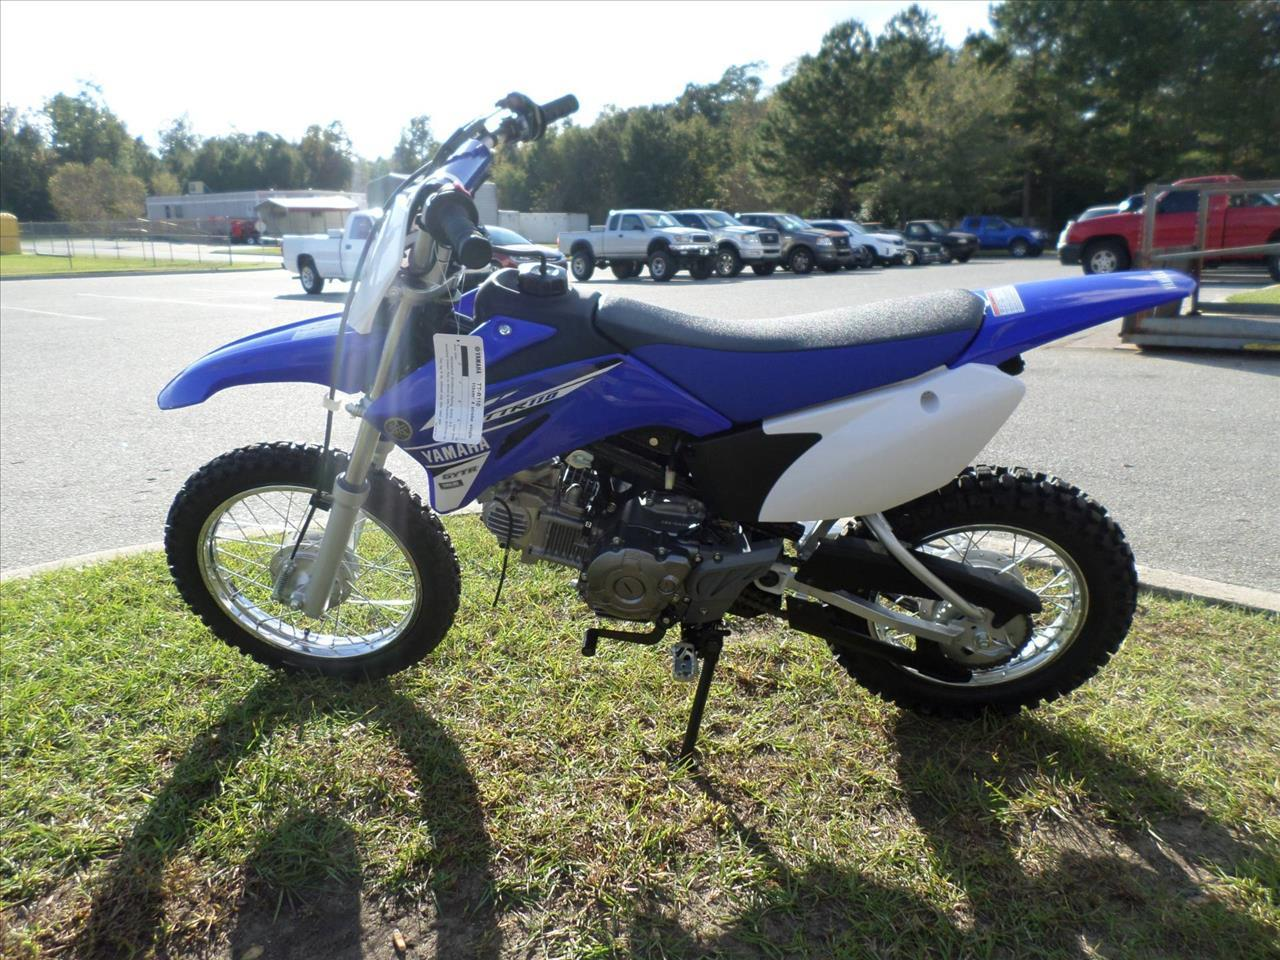 2017 Yamaha ttr110 for sale at Vehicle Network, LLC - Ron Ayers Motorsports in Greenville NC